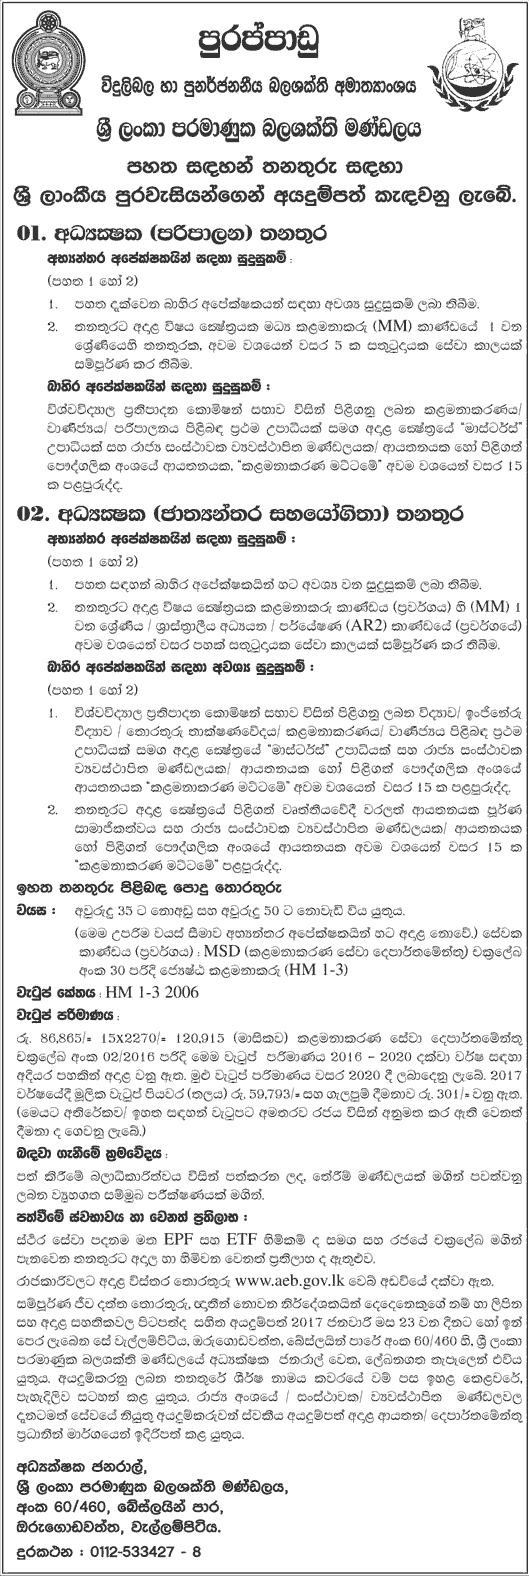 Vacancies AT Ministry of Power and Renewable Energy